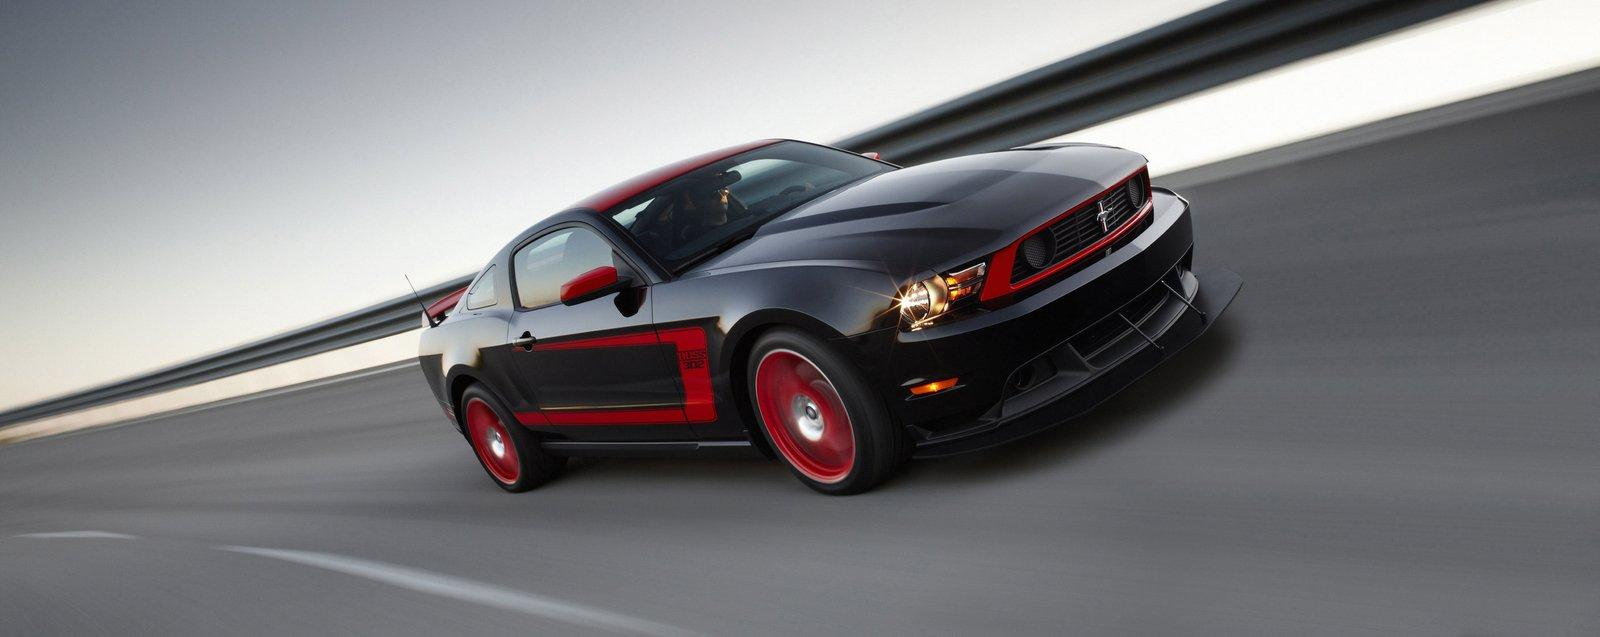 2011 Ford Mustang Boss 302R photo - 2